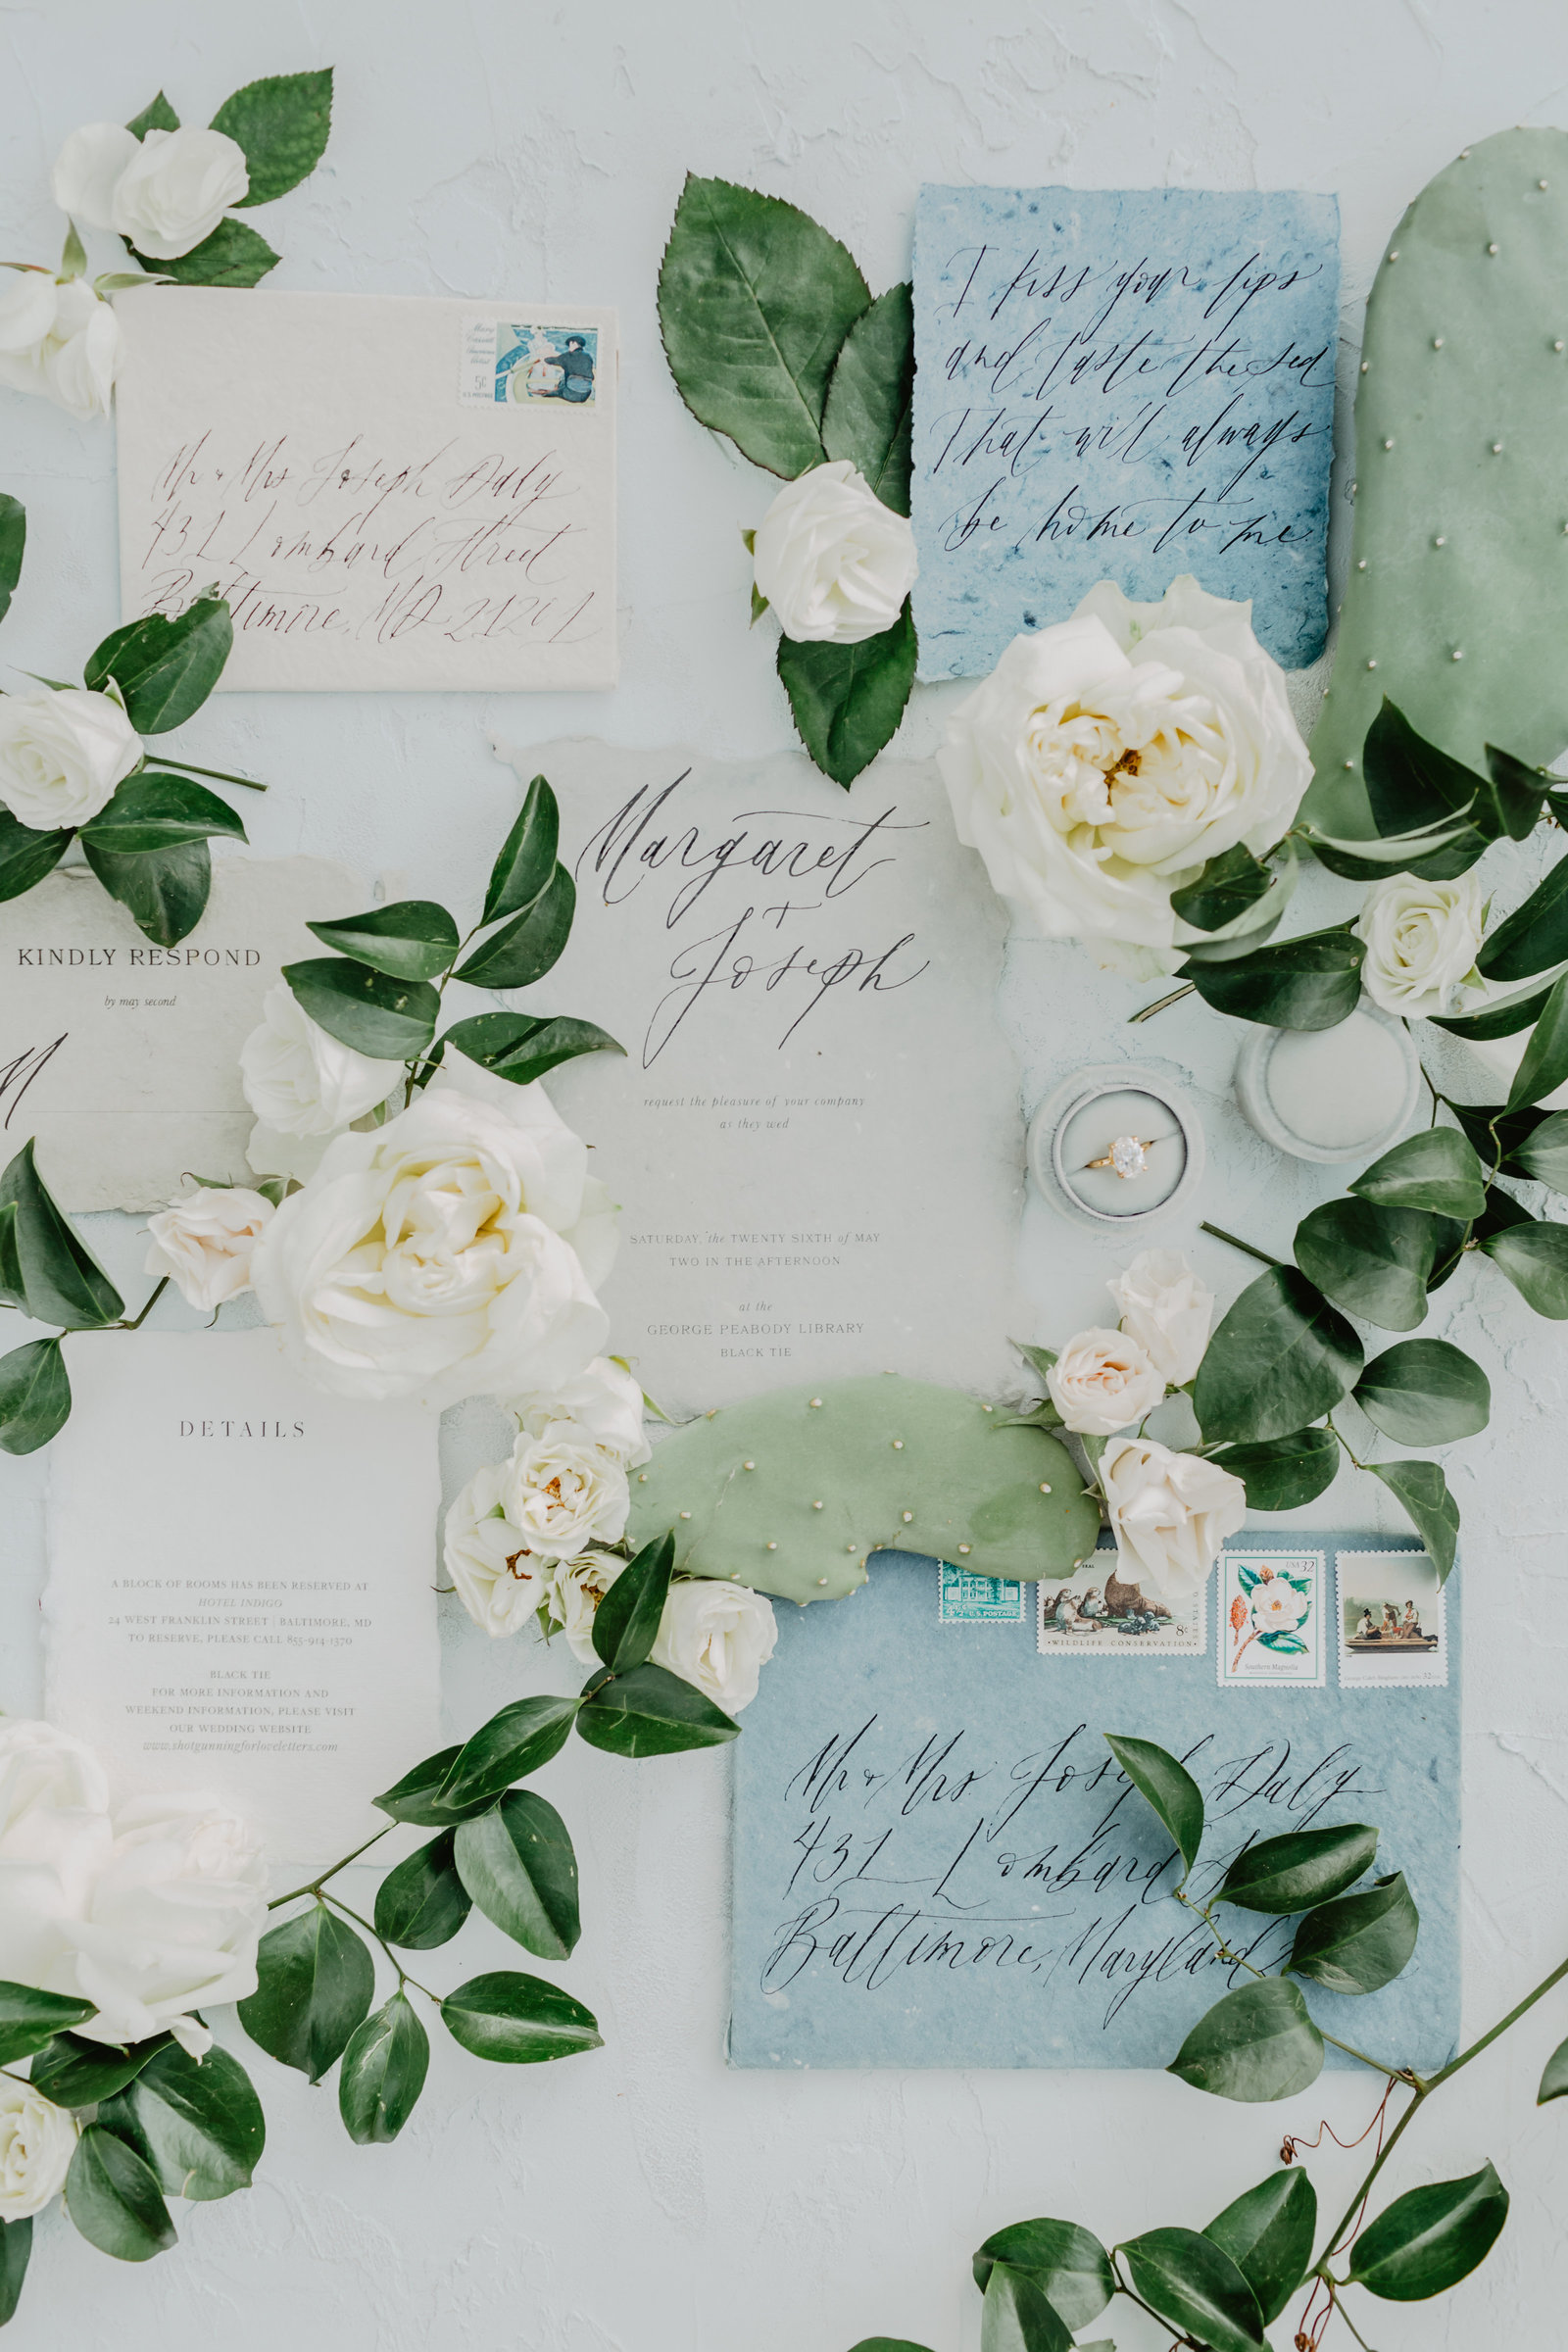 Romantic inspired wedding invitation suite with green floral accents.